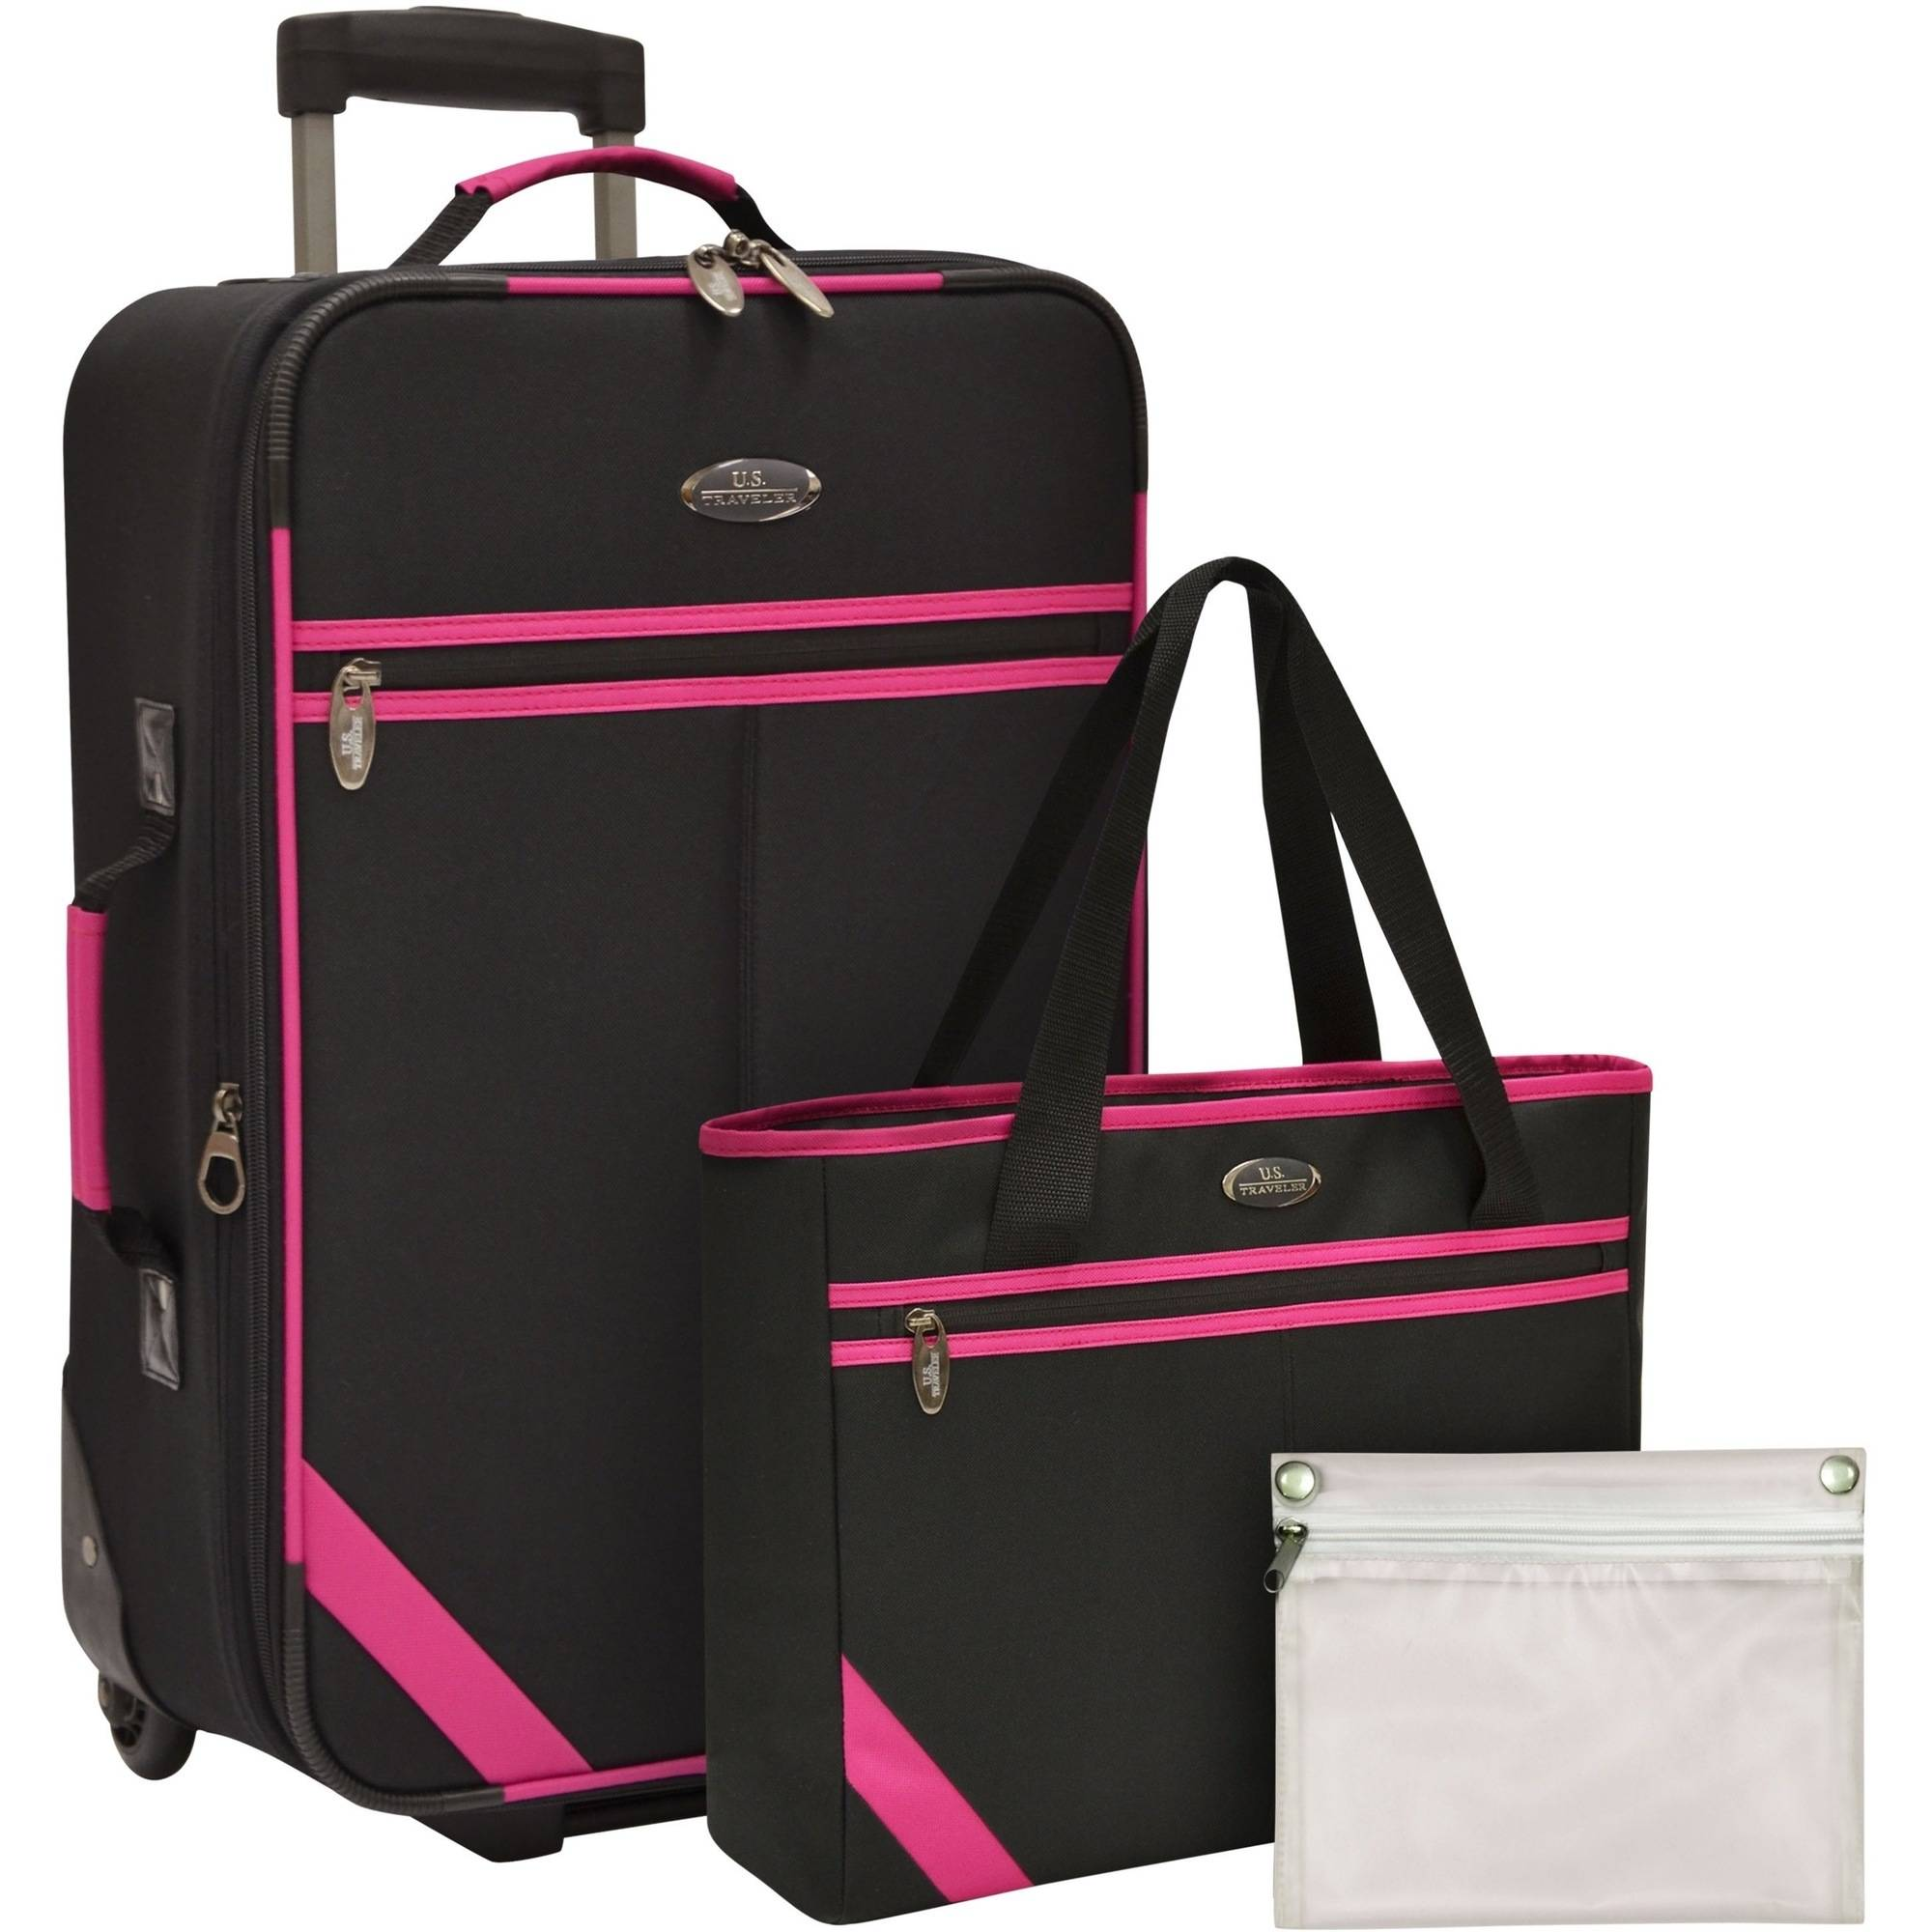 U.S. Traveler Fashion 3-Piece Luggage Set